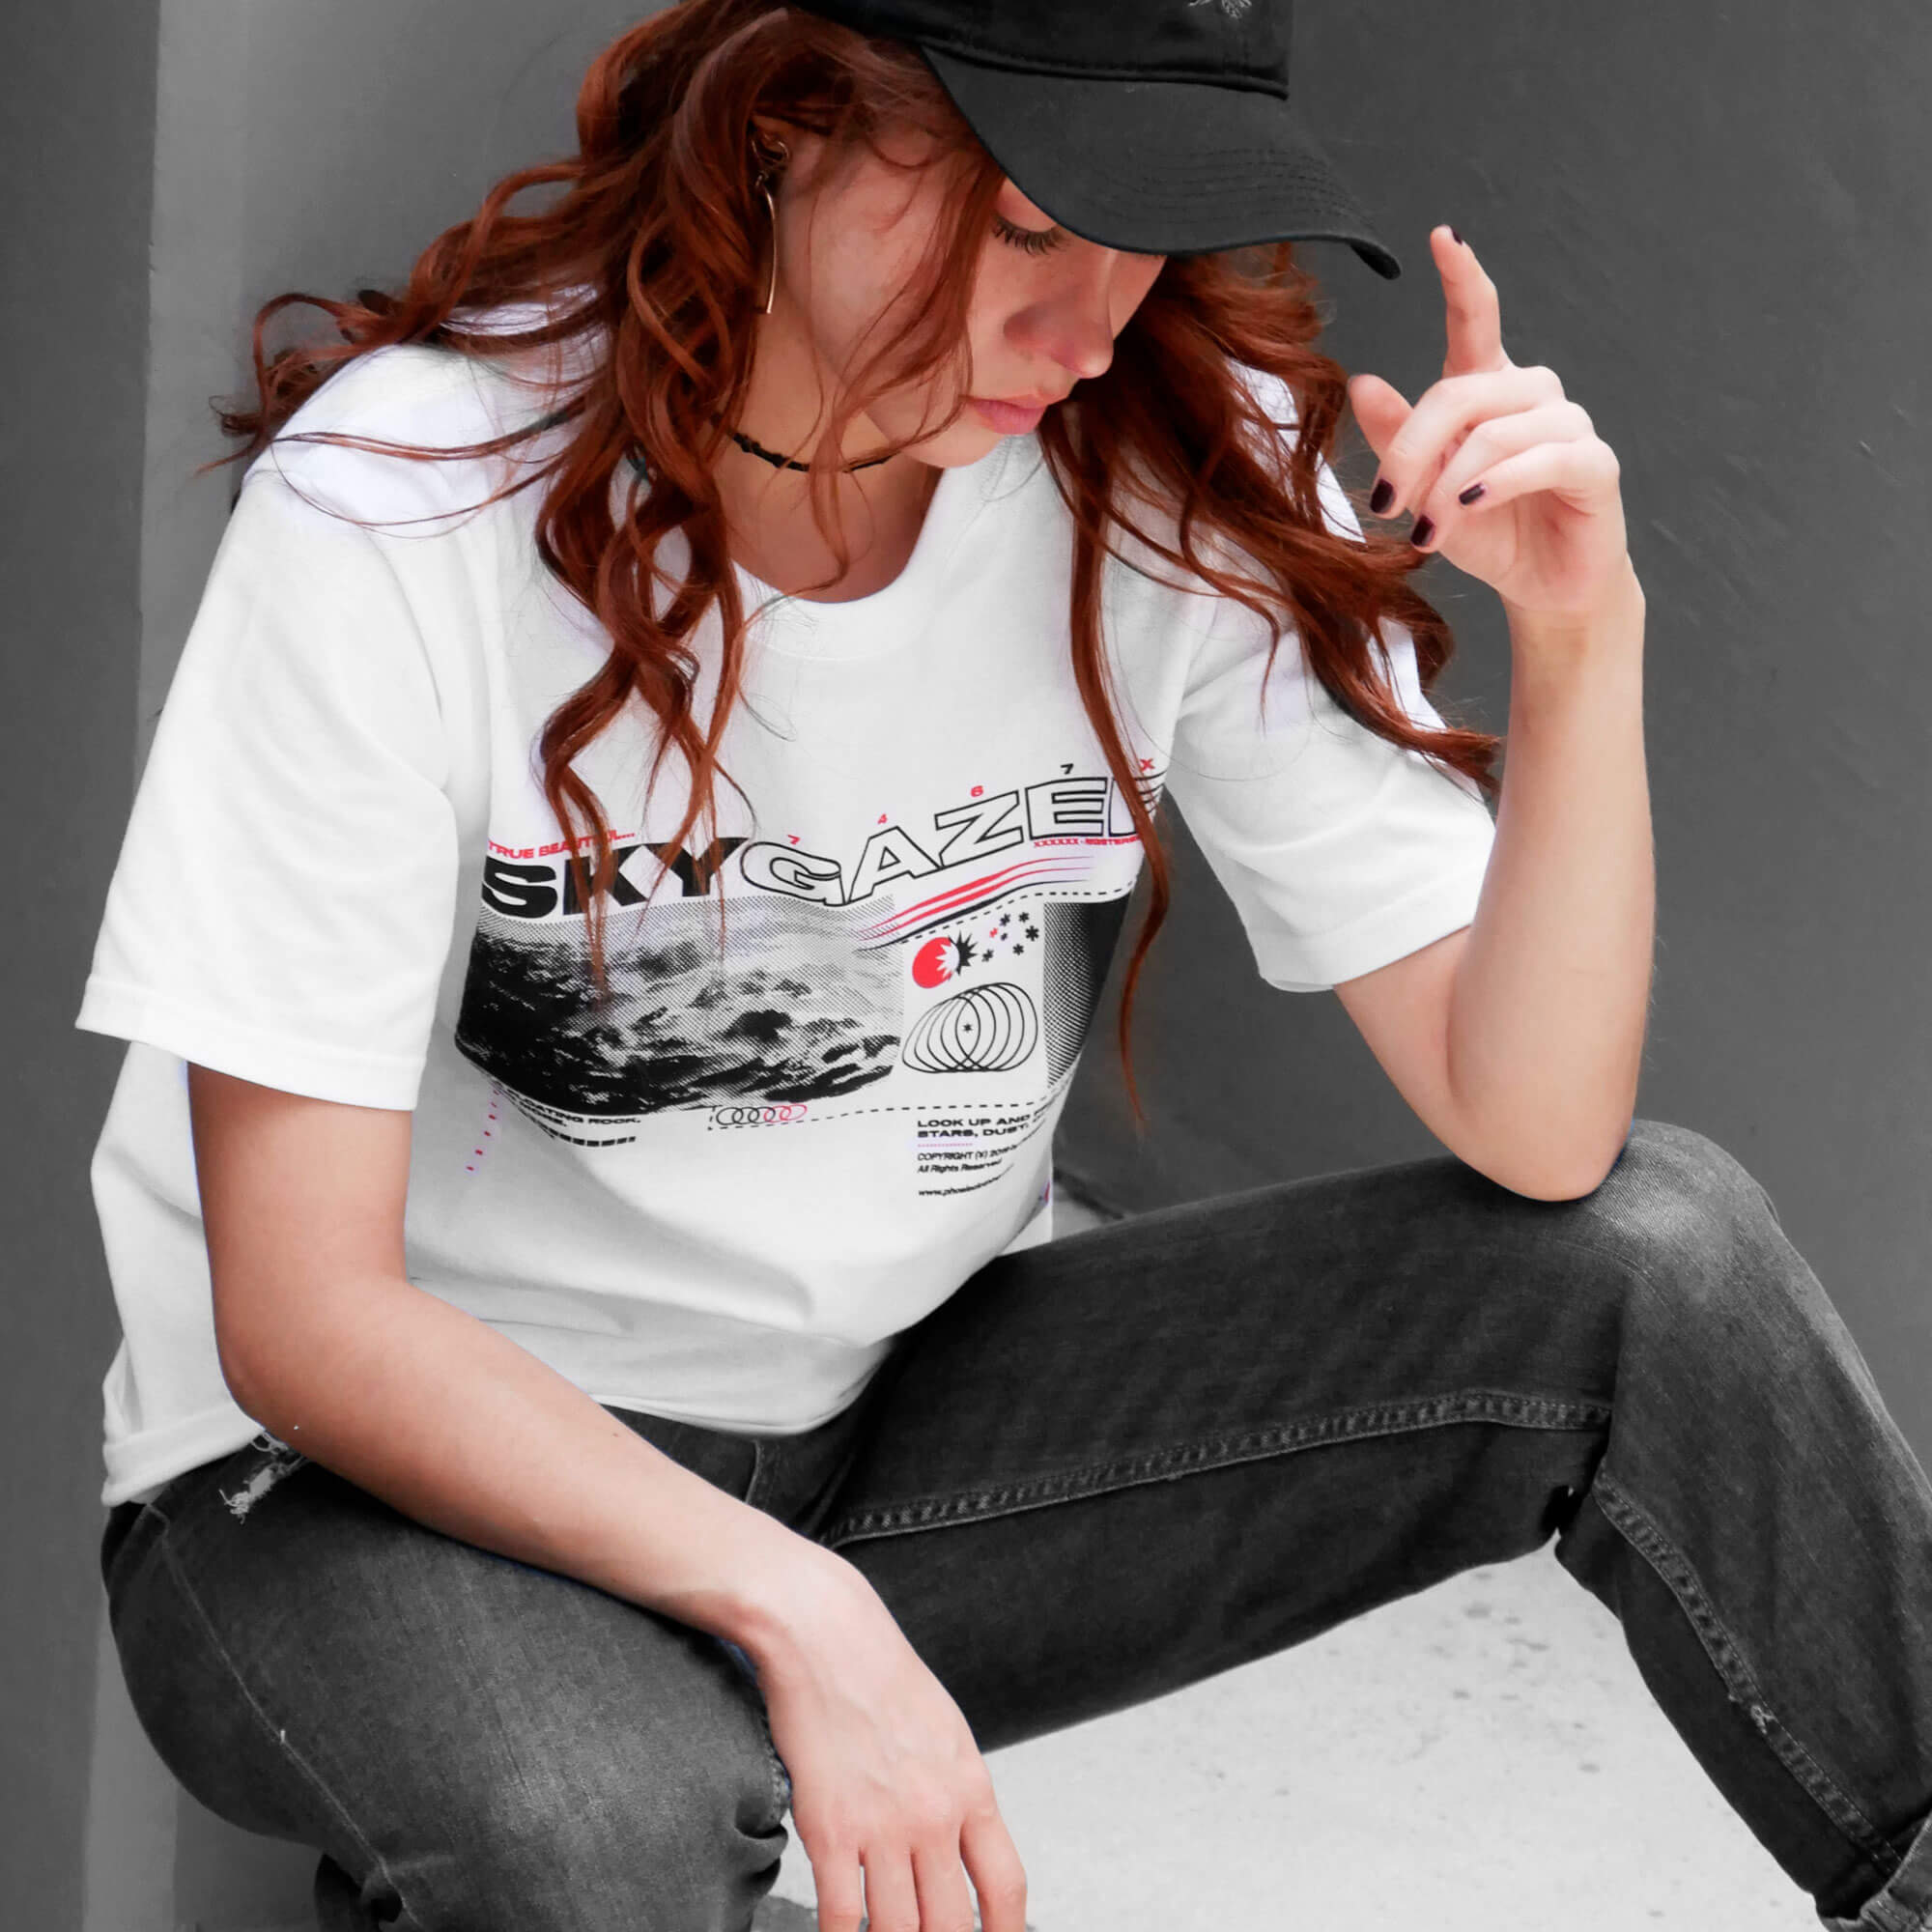 Angle view of model wearing SKYGAZER white t-shirt from PHOSIS Clothing